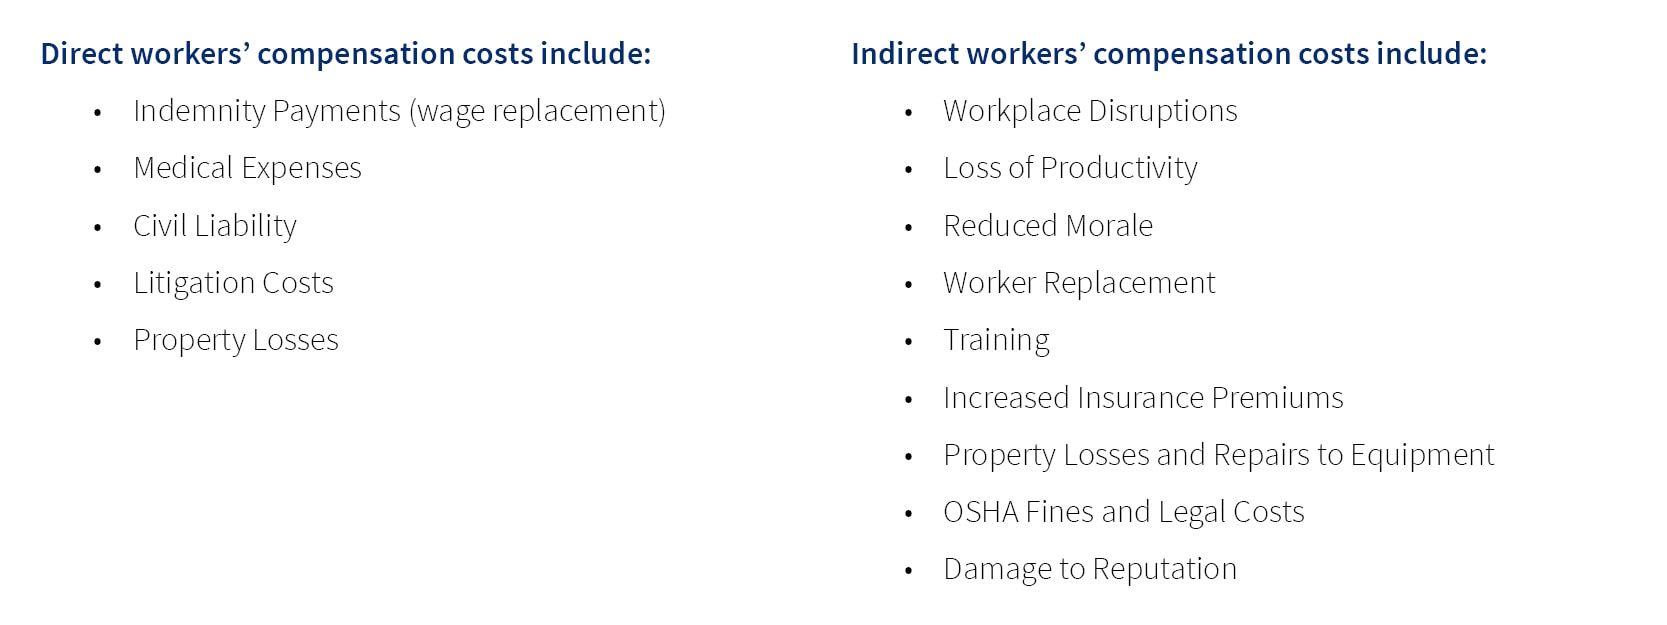 Direct and Indirect Workers' Compensation Costs